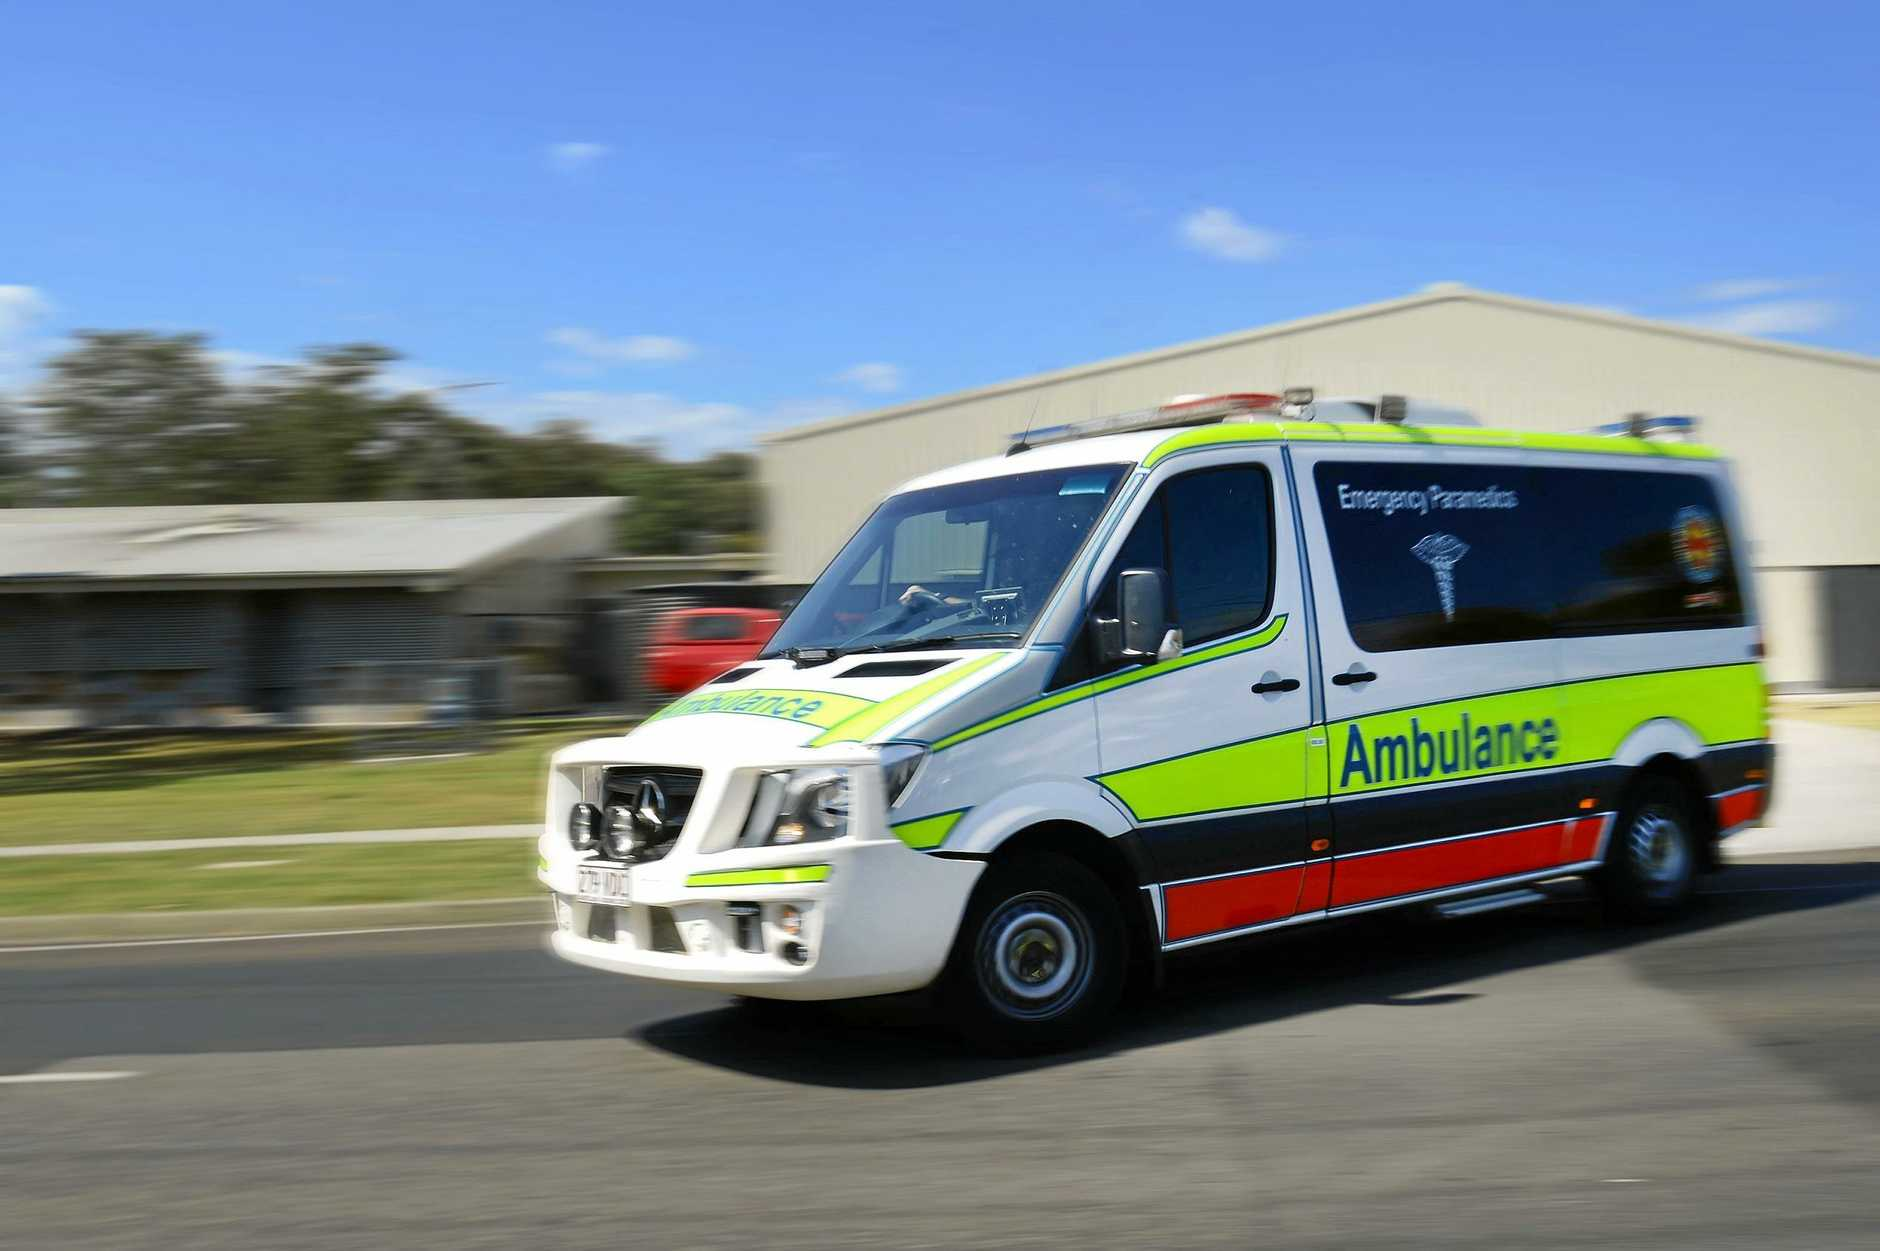 HORROR ACCIDENT: An eight-year-old has been airlifted to Brisbane after being hit by a car in Chinchilla last night.